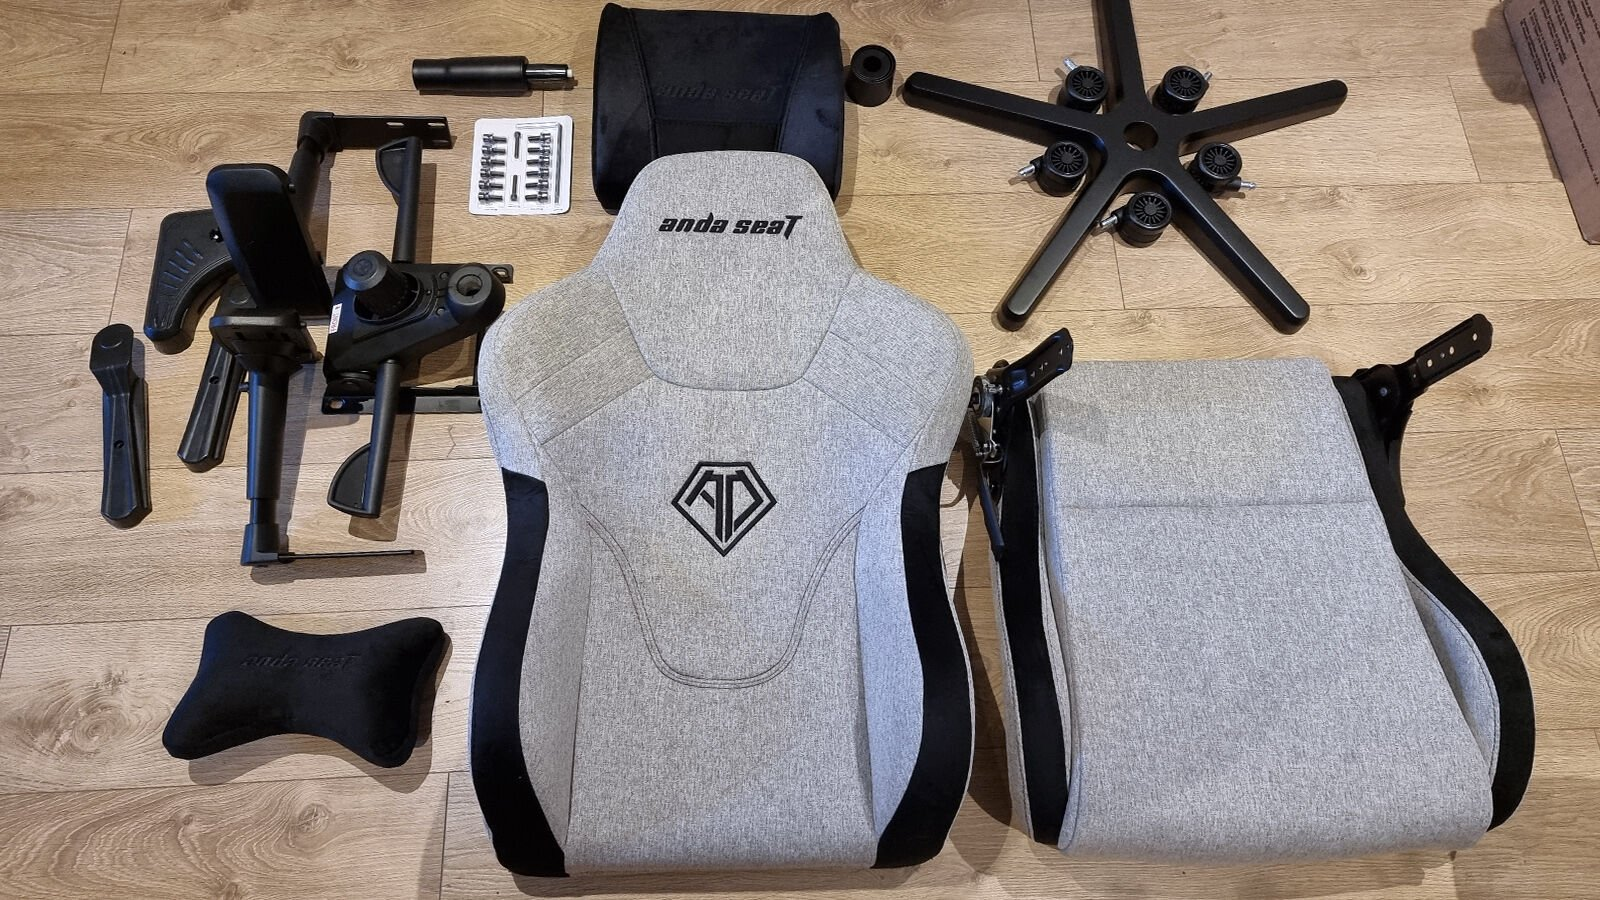 AndaSeat T Pro 2 disassembled